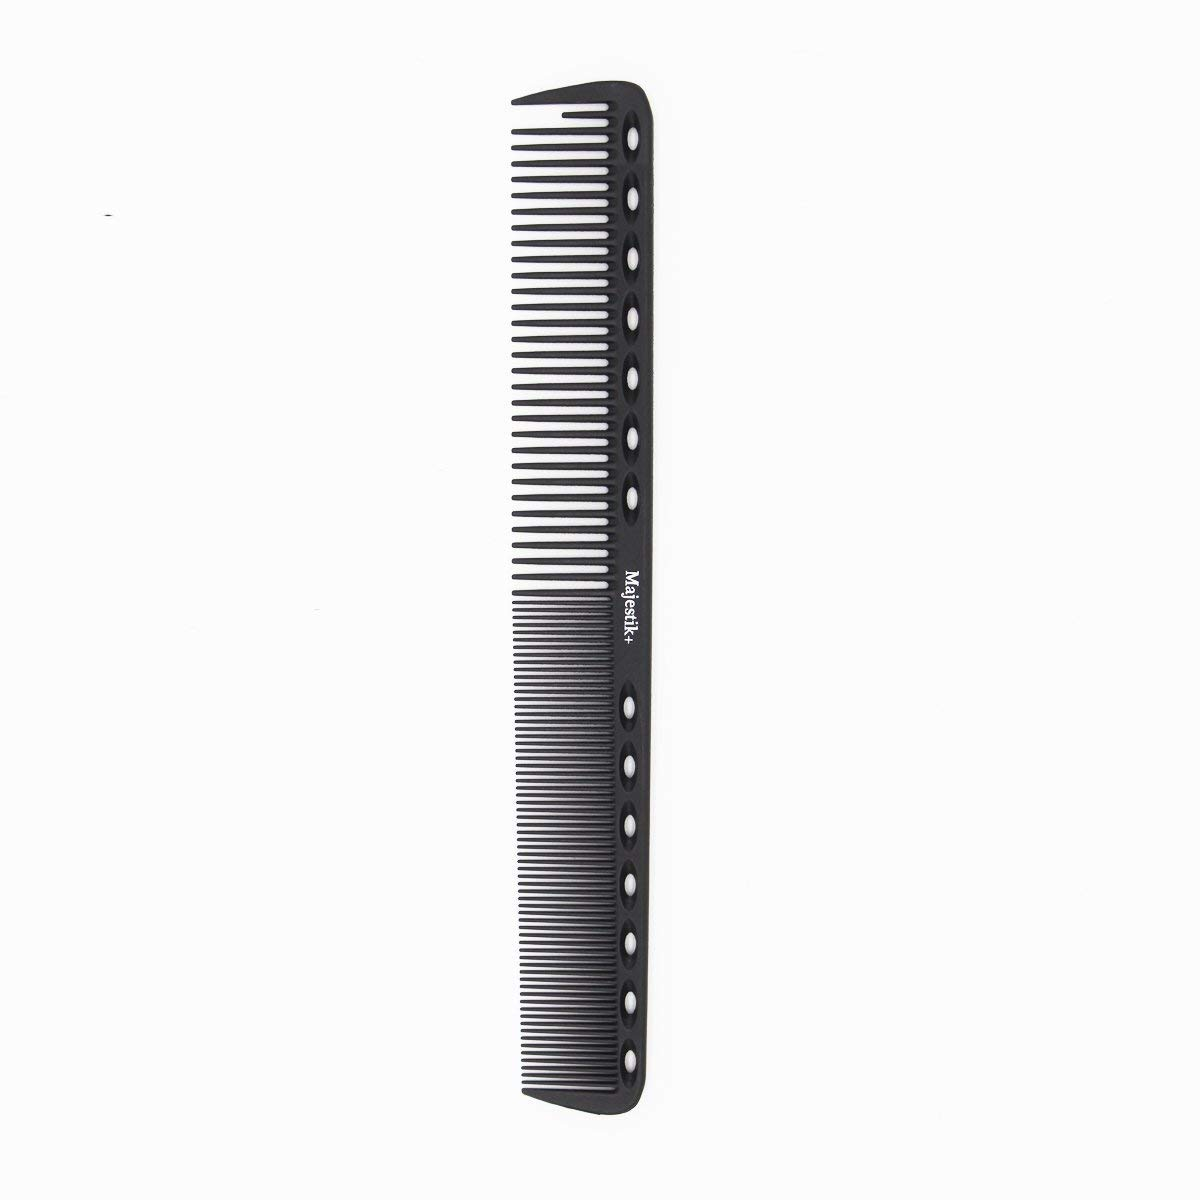 HairDressing Comb- a Professional Carbon Fibre Measuring Hair Cutting Comb by Majestik+, Anti-Static, Strength & Durability, Black, With Free Bespoke PVC Product Pouch